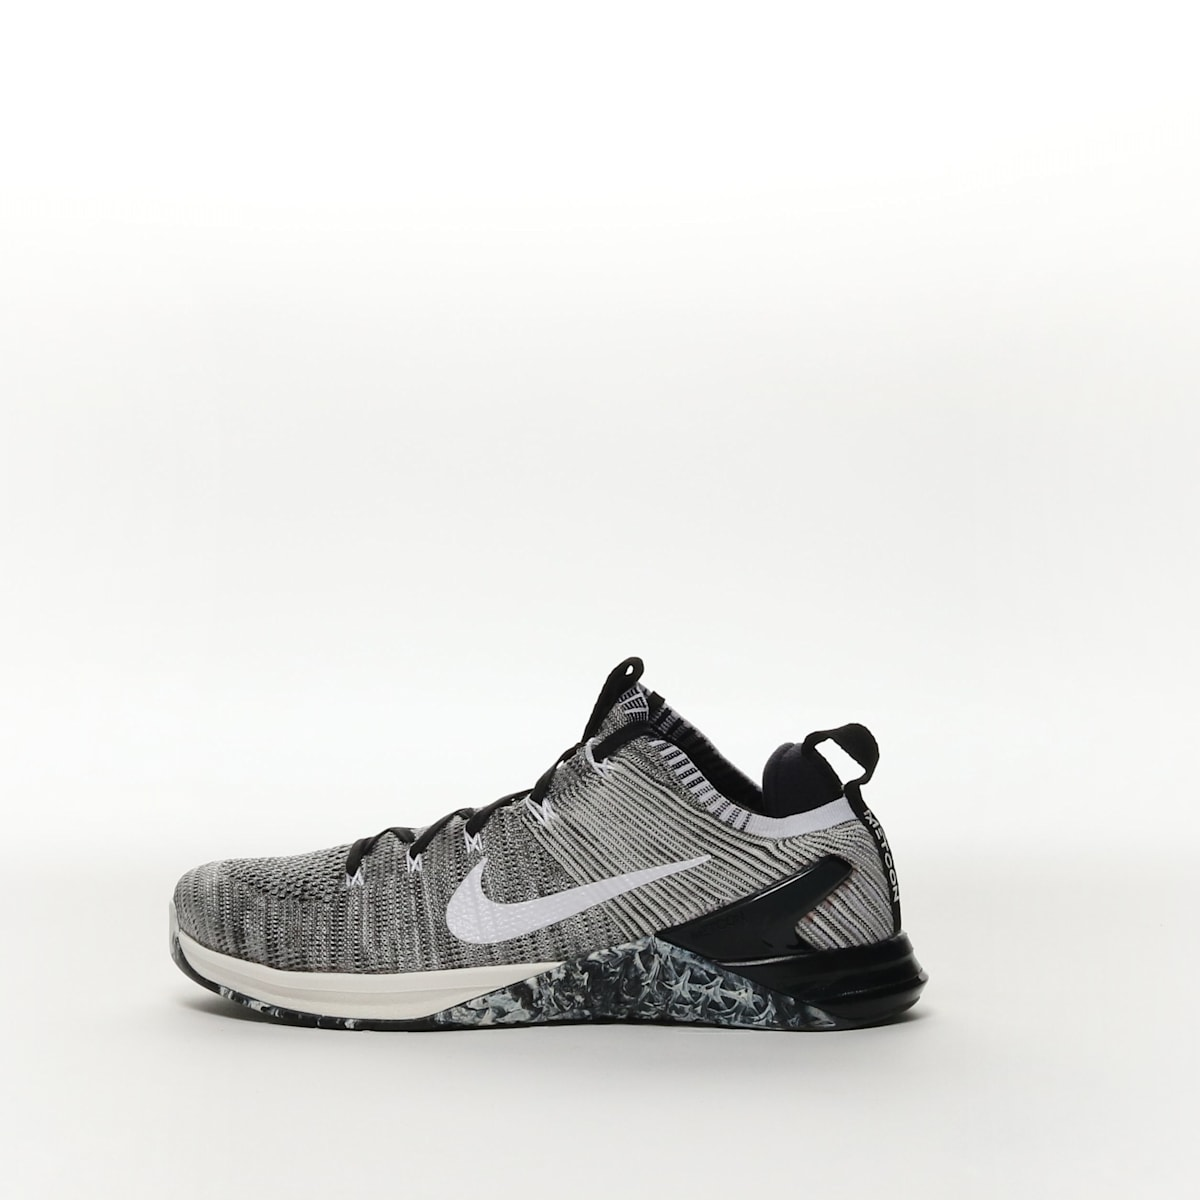 separation shoes d457a 4c83f ... Nike Metcon DSX Flyknit 2.  Actual Shoe